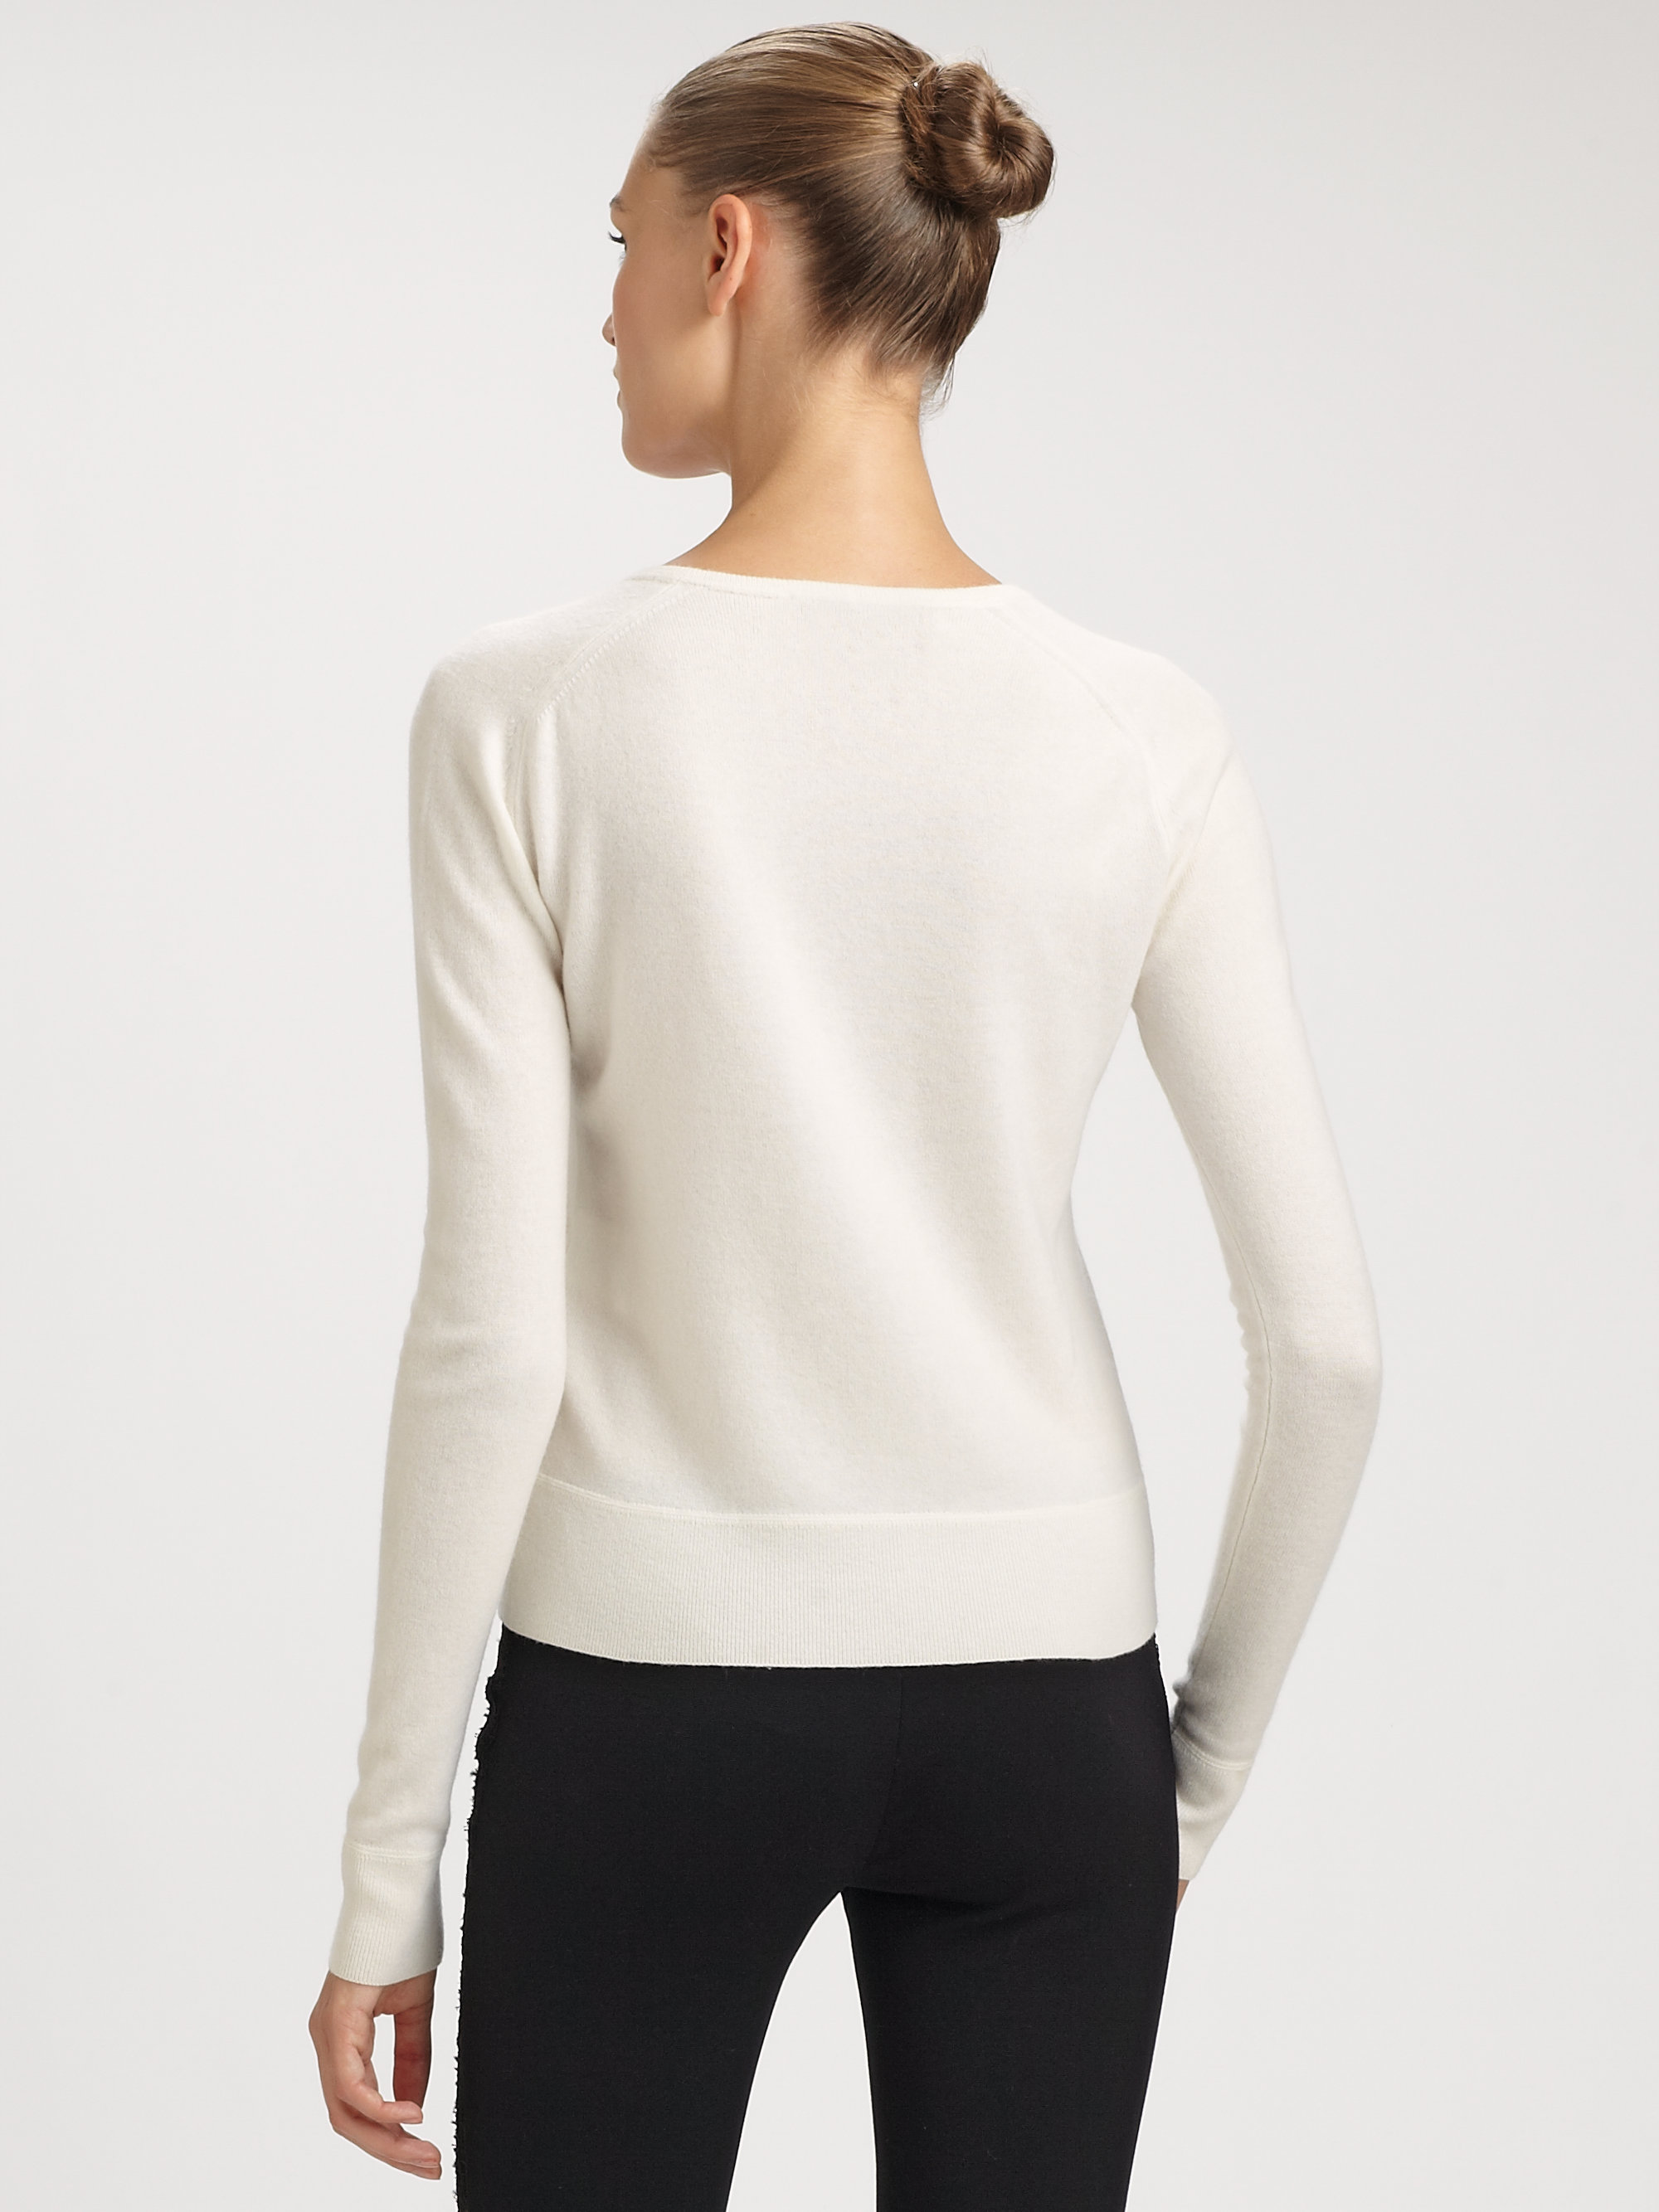 Emilio pucci V-neck Cashmere Sweater in White | Lyst